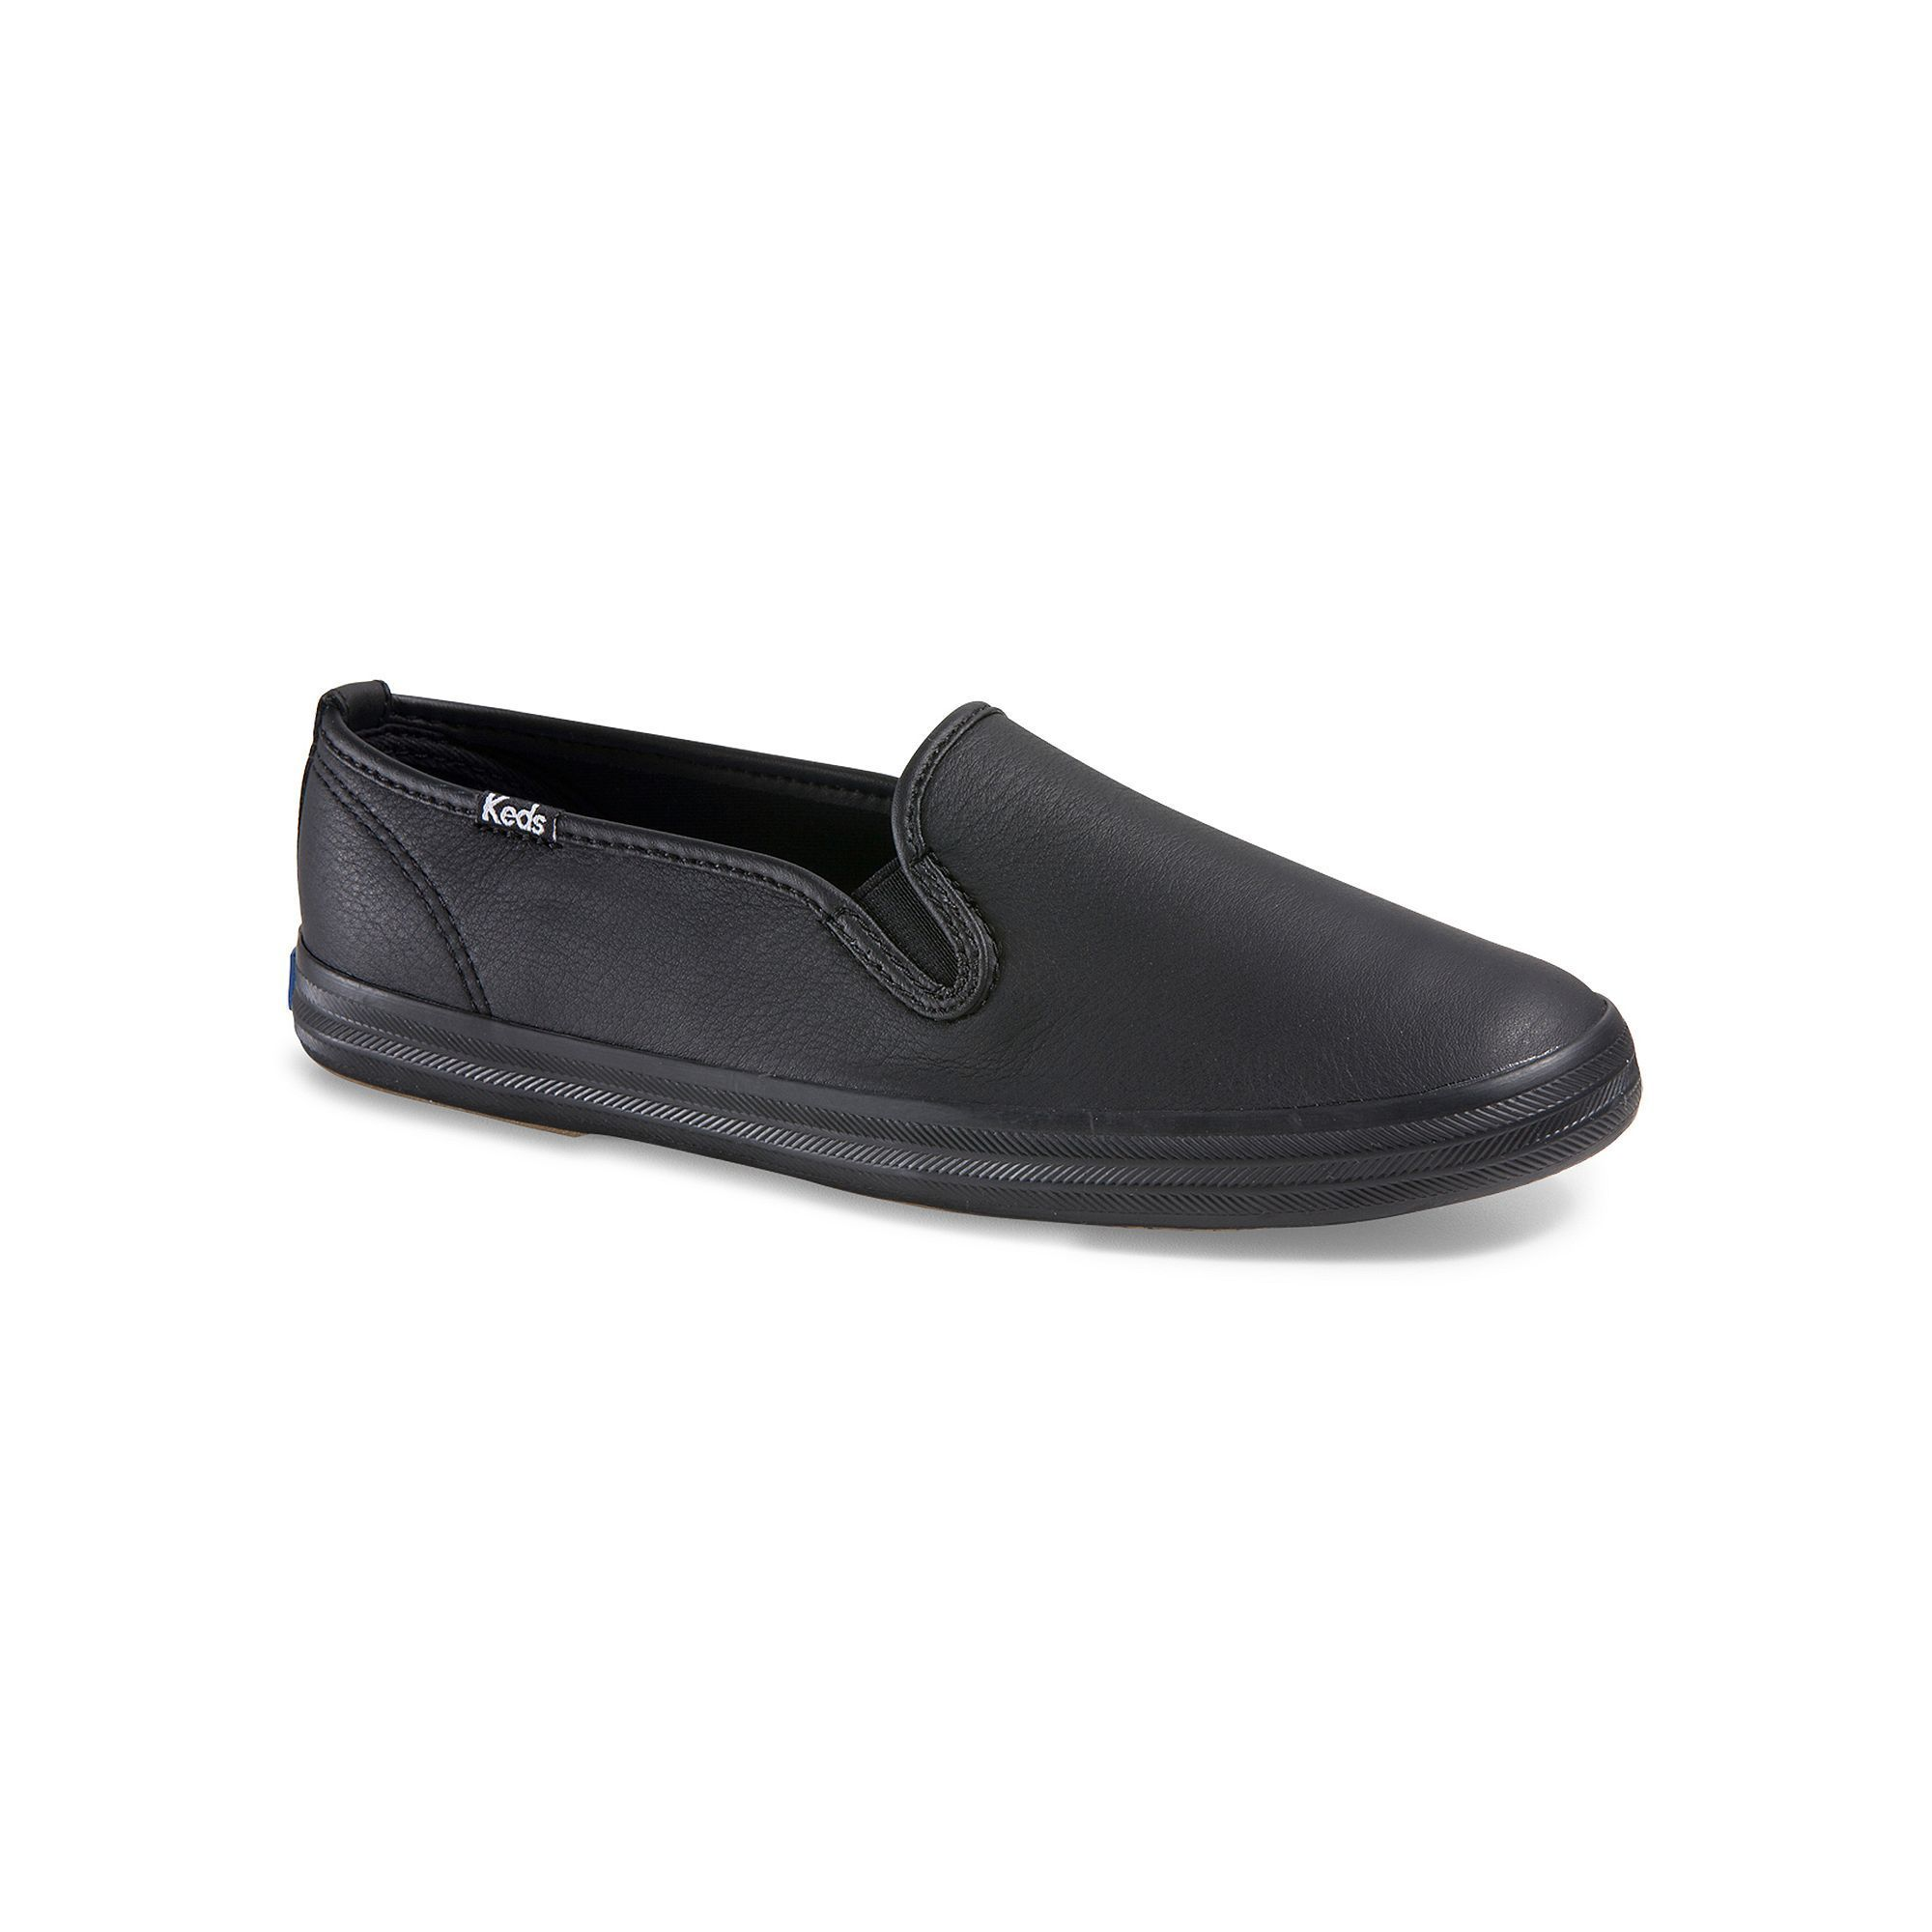 bcd32c9bb760 Keds Champion Women s Slip-On Leather Shoes